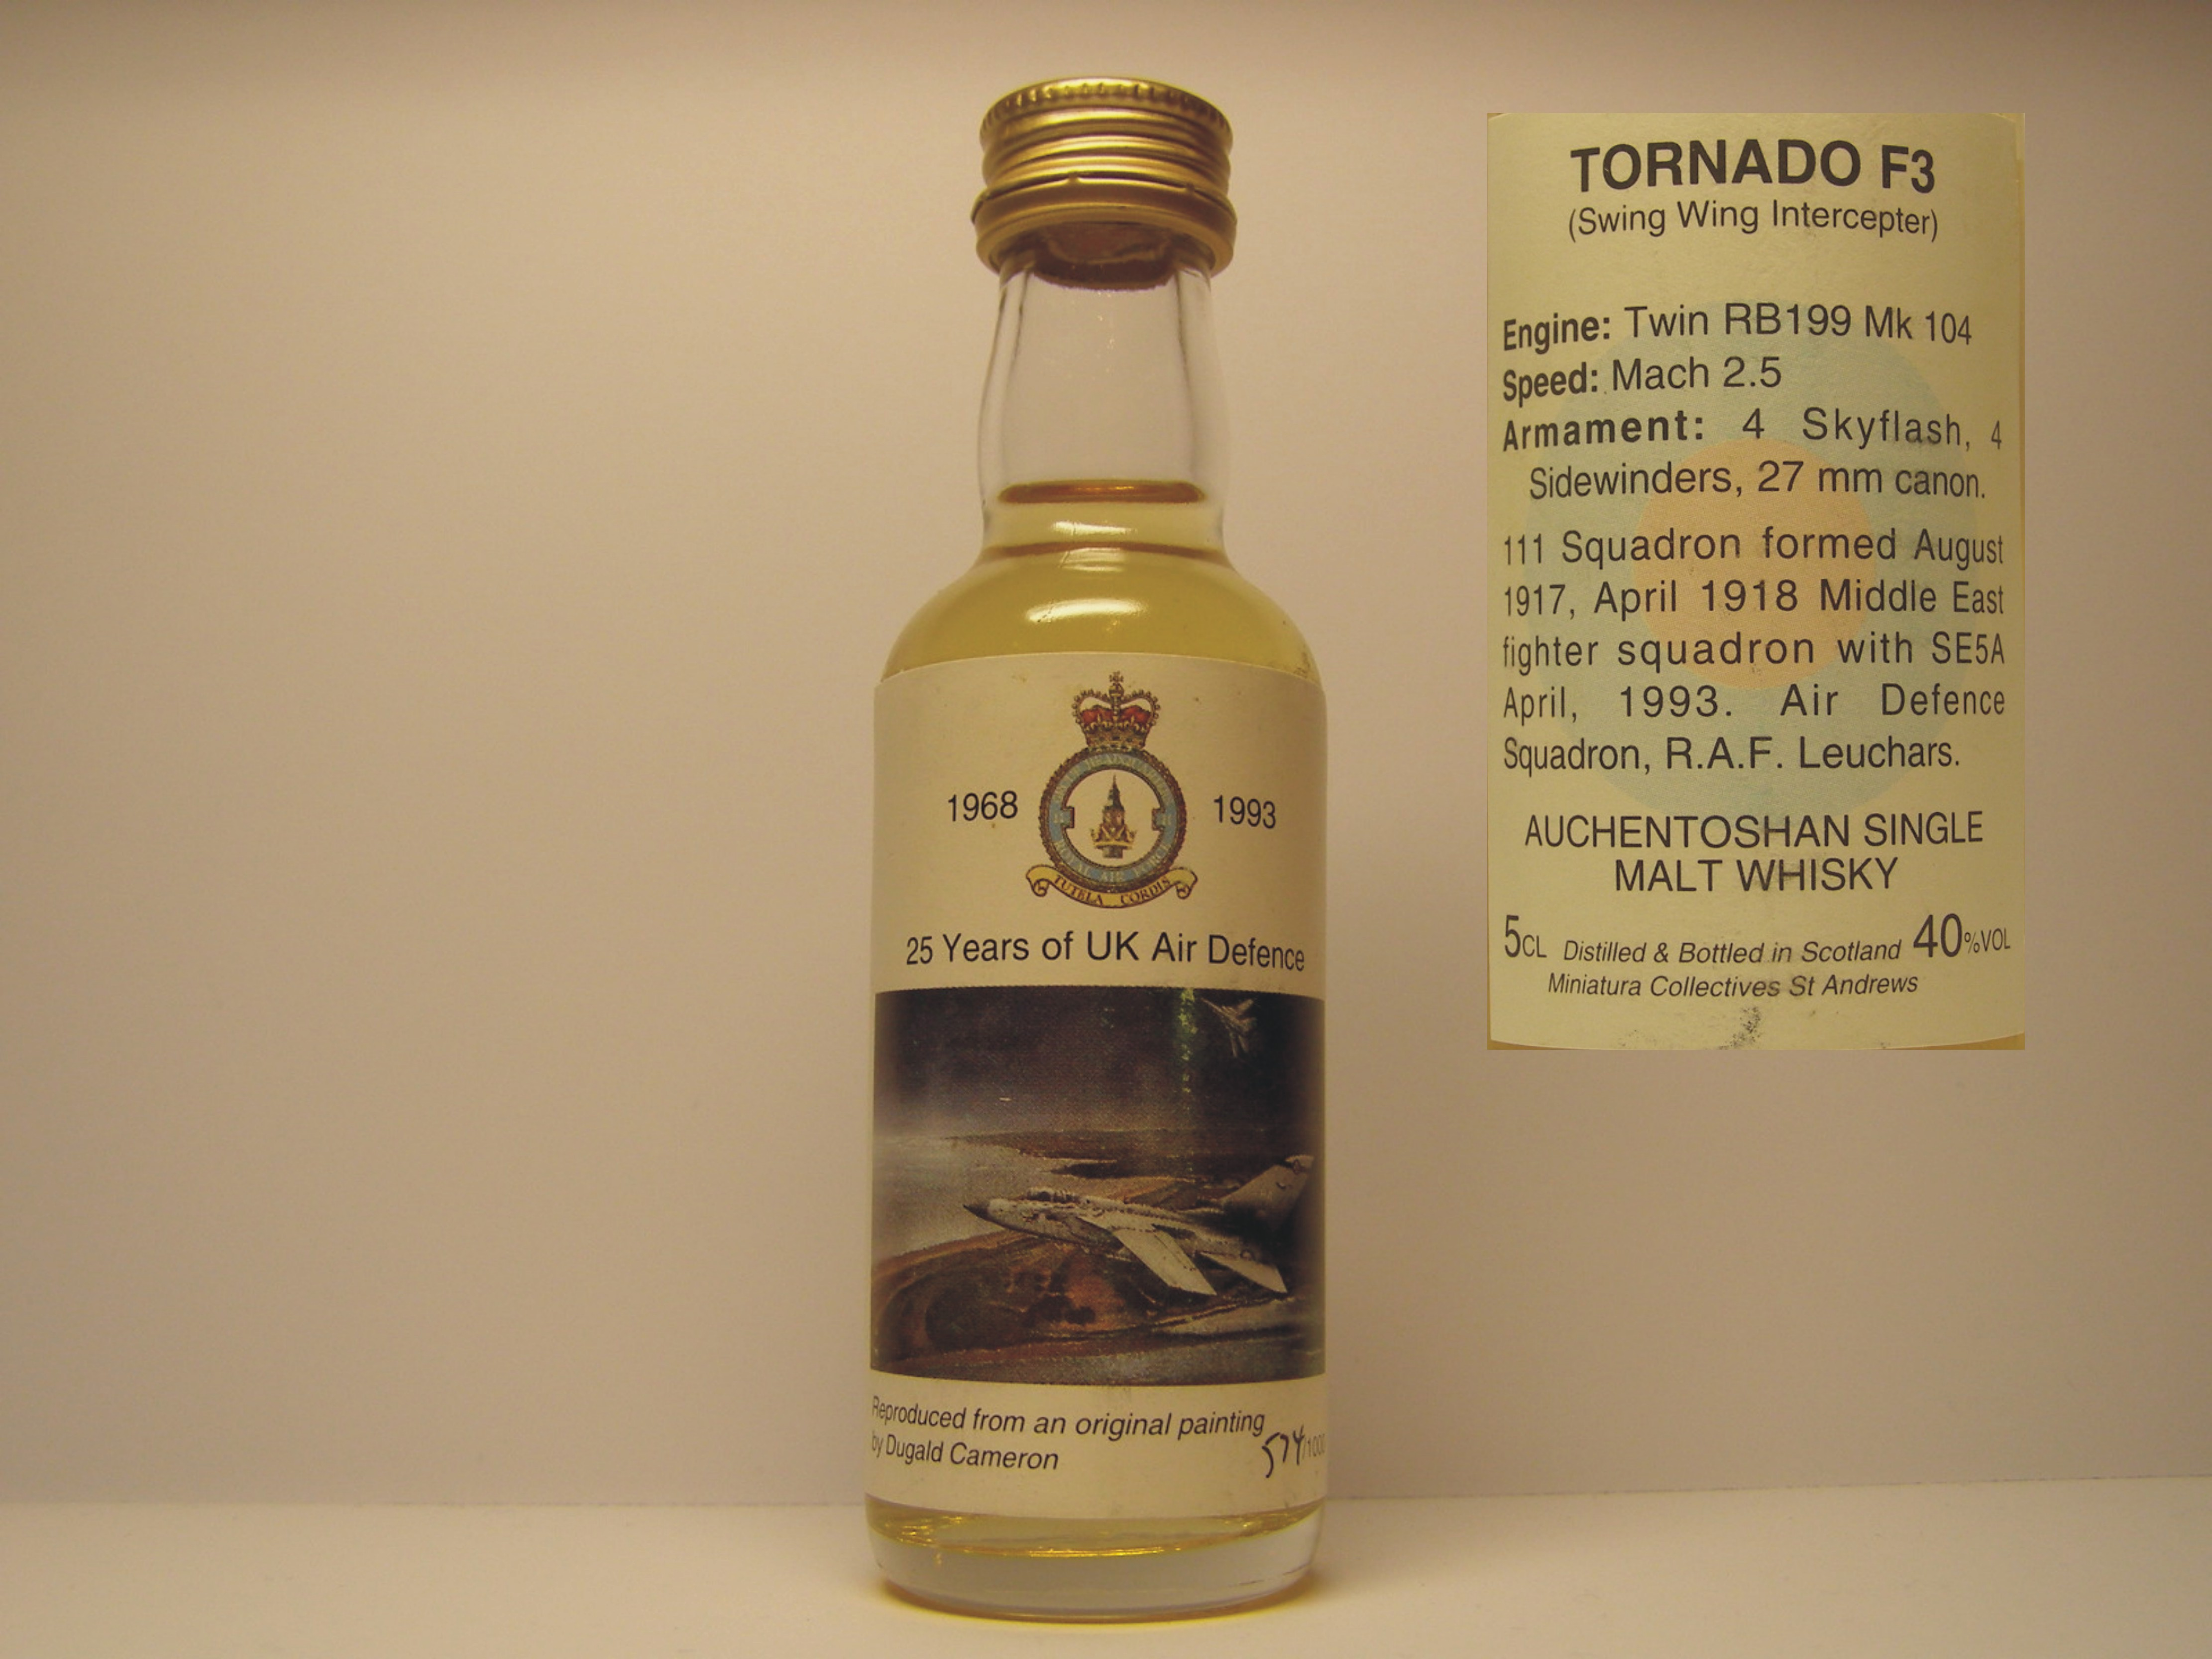 TORNADO F3 SMW 5CL 40%VOL